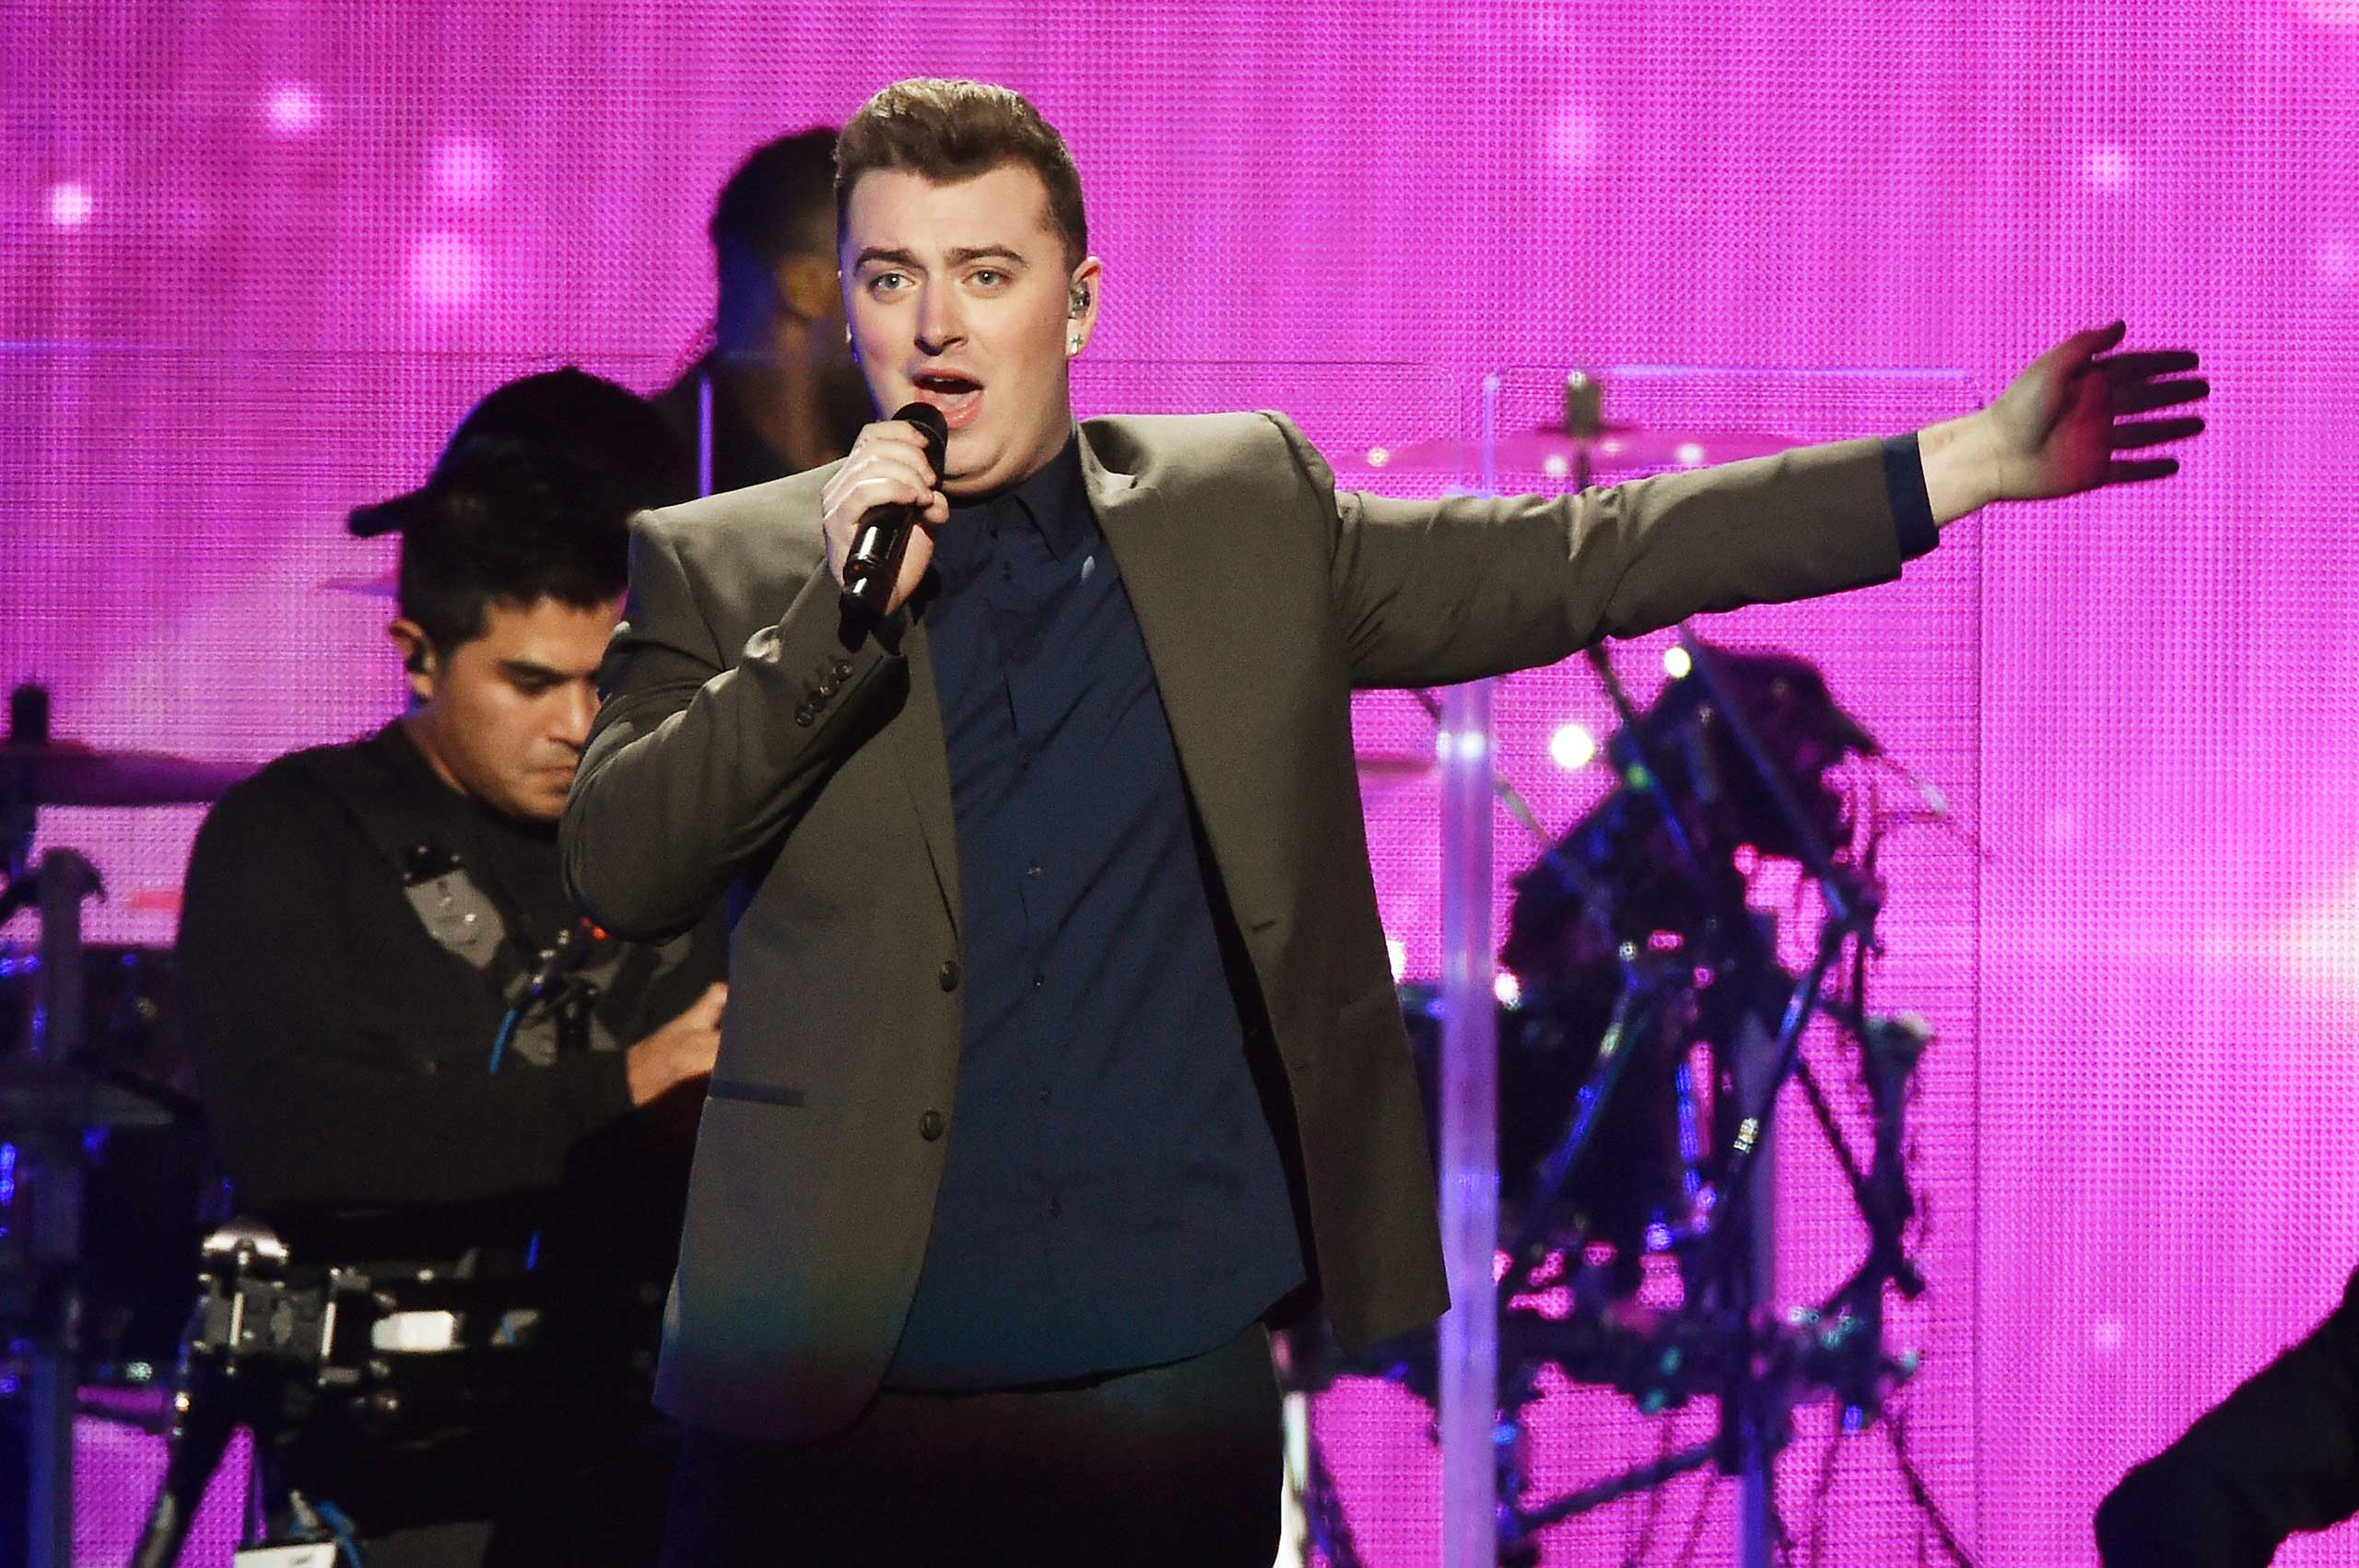 Sam Smith performs onstage during iHeartRadio Jingle Ball 2014 at Madison Square Garden on Dec. 12, 2014 in New York City.